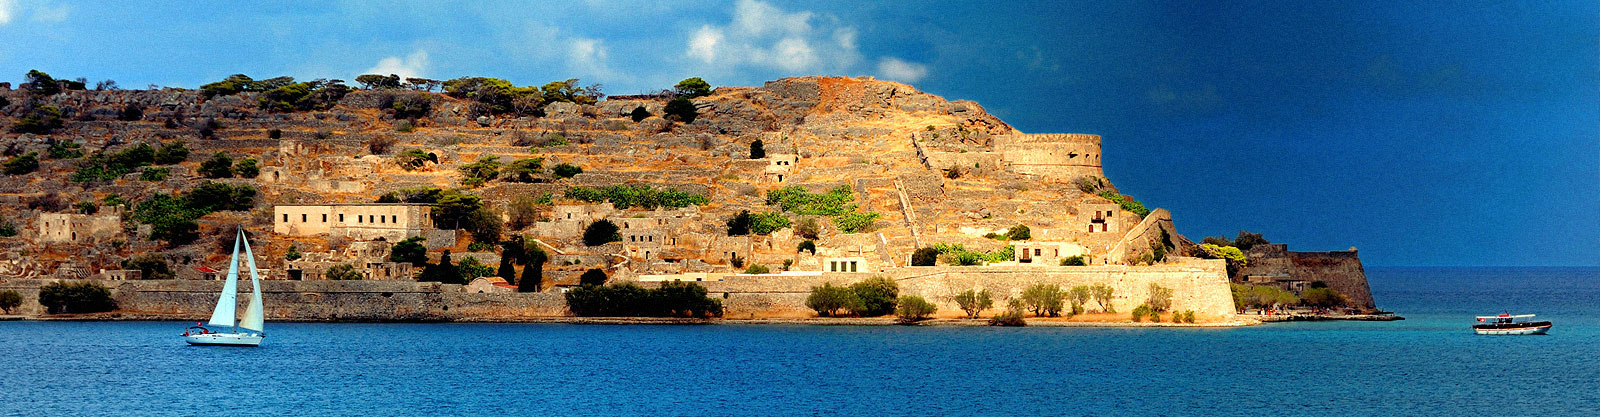 The Leper Colony - Kritsa – Aghios Nikolaos – Elounda – Plaka To Spinalonga – Fourni